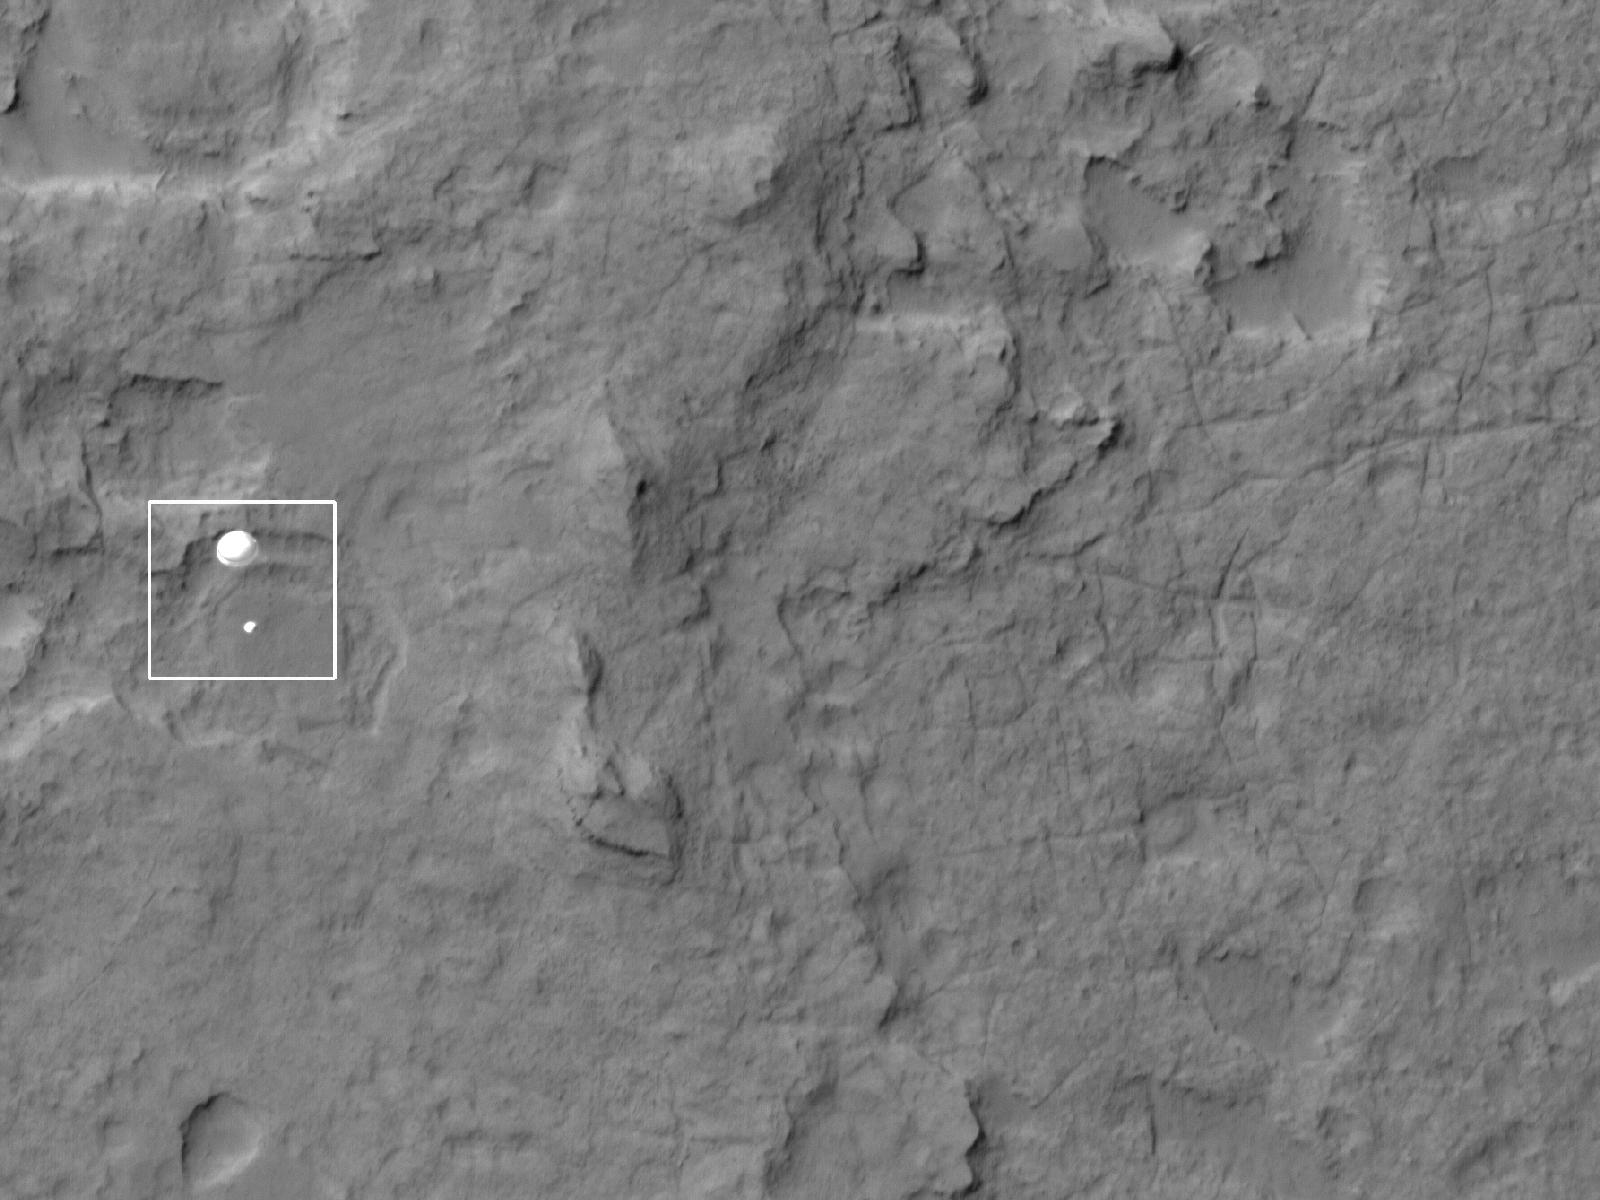 Curiosity rover spotted on descent to Mars | Space | EarthSky